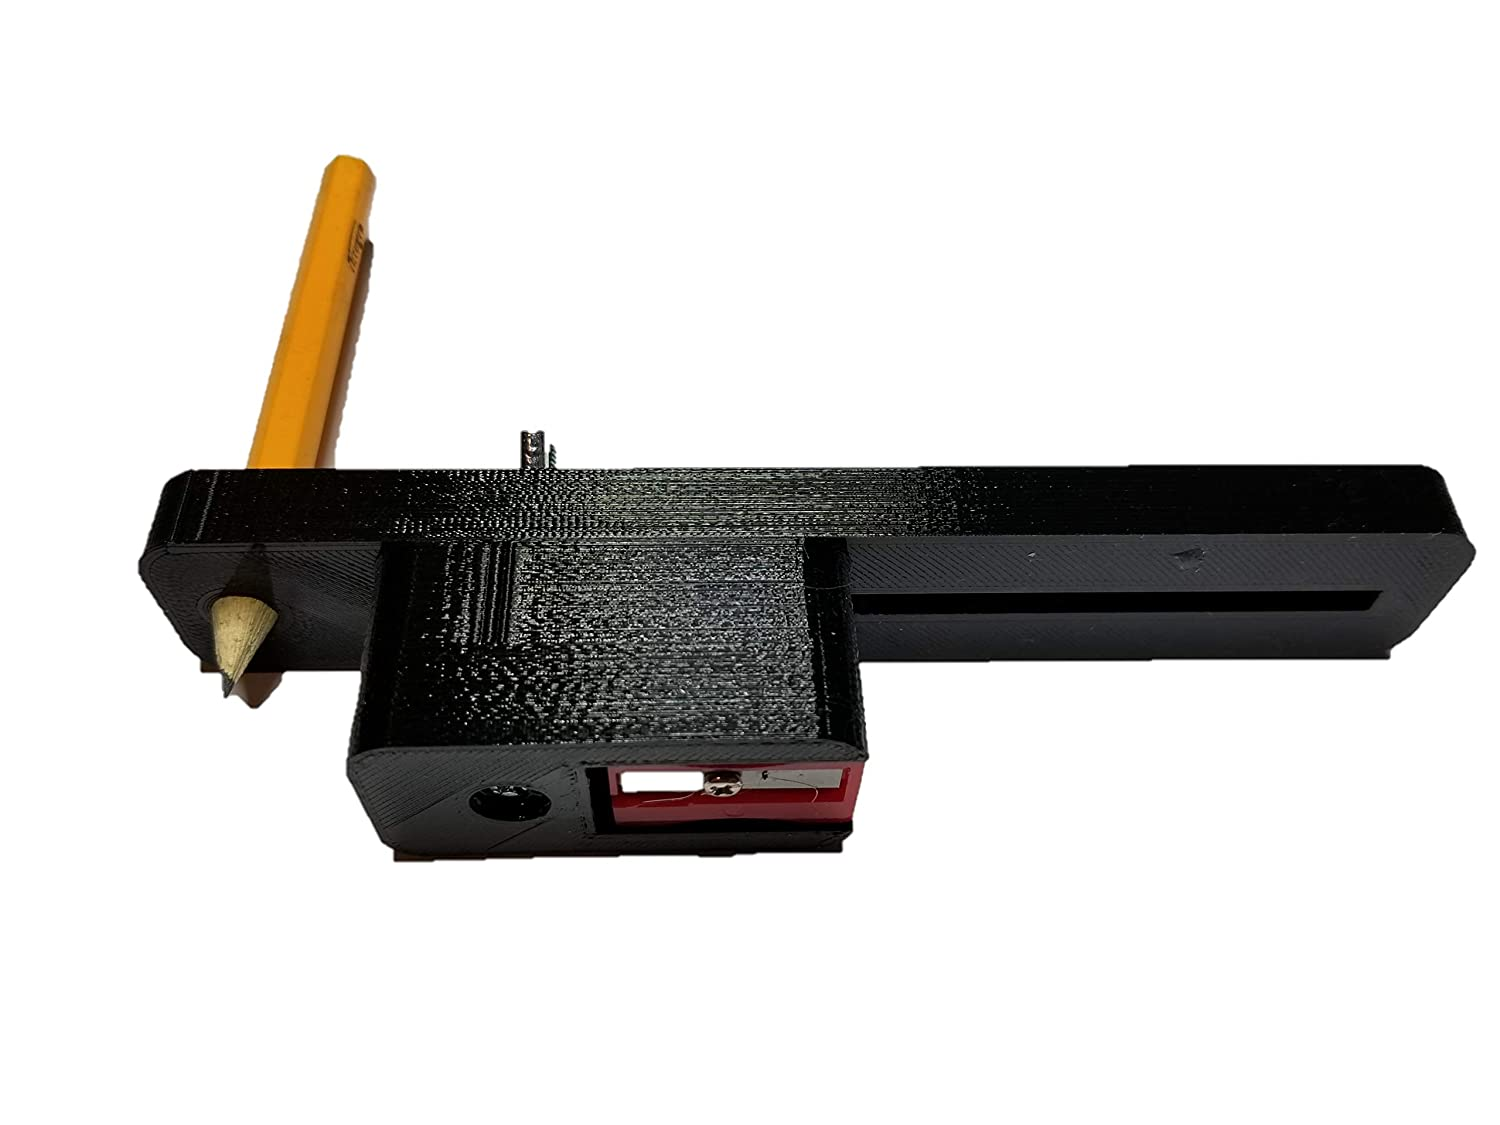 Auto Body line Marker Tool ONTRACK Product Solutions